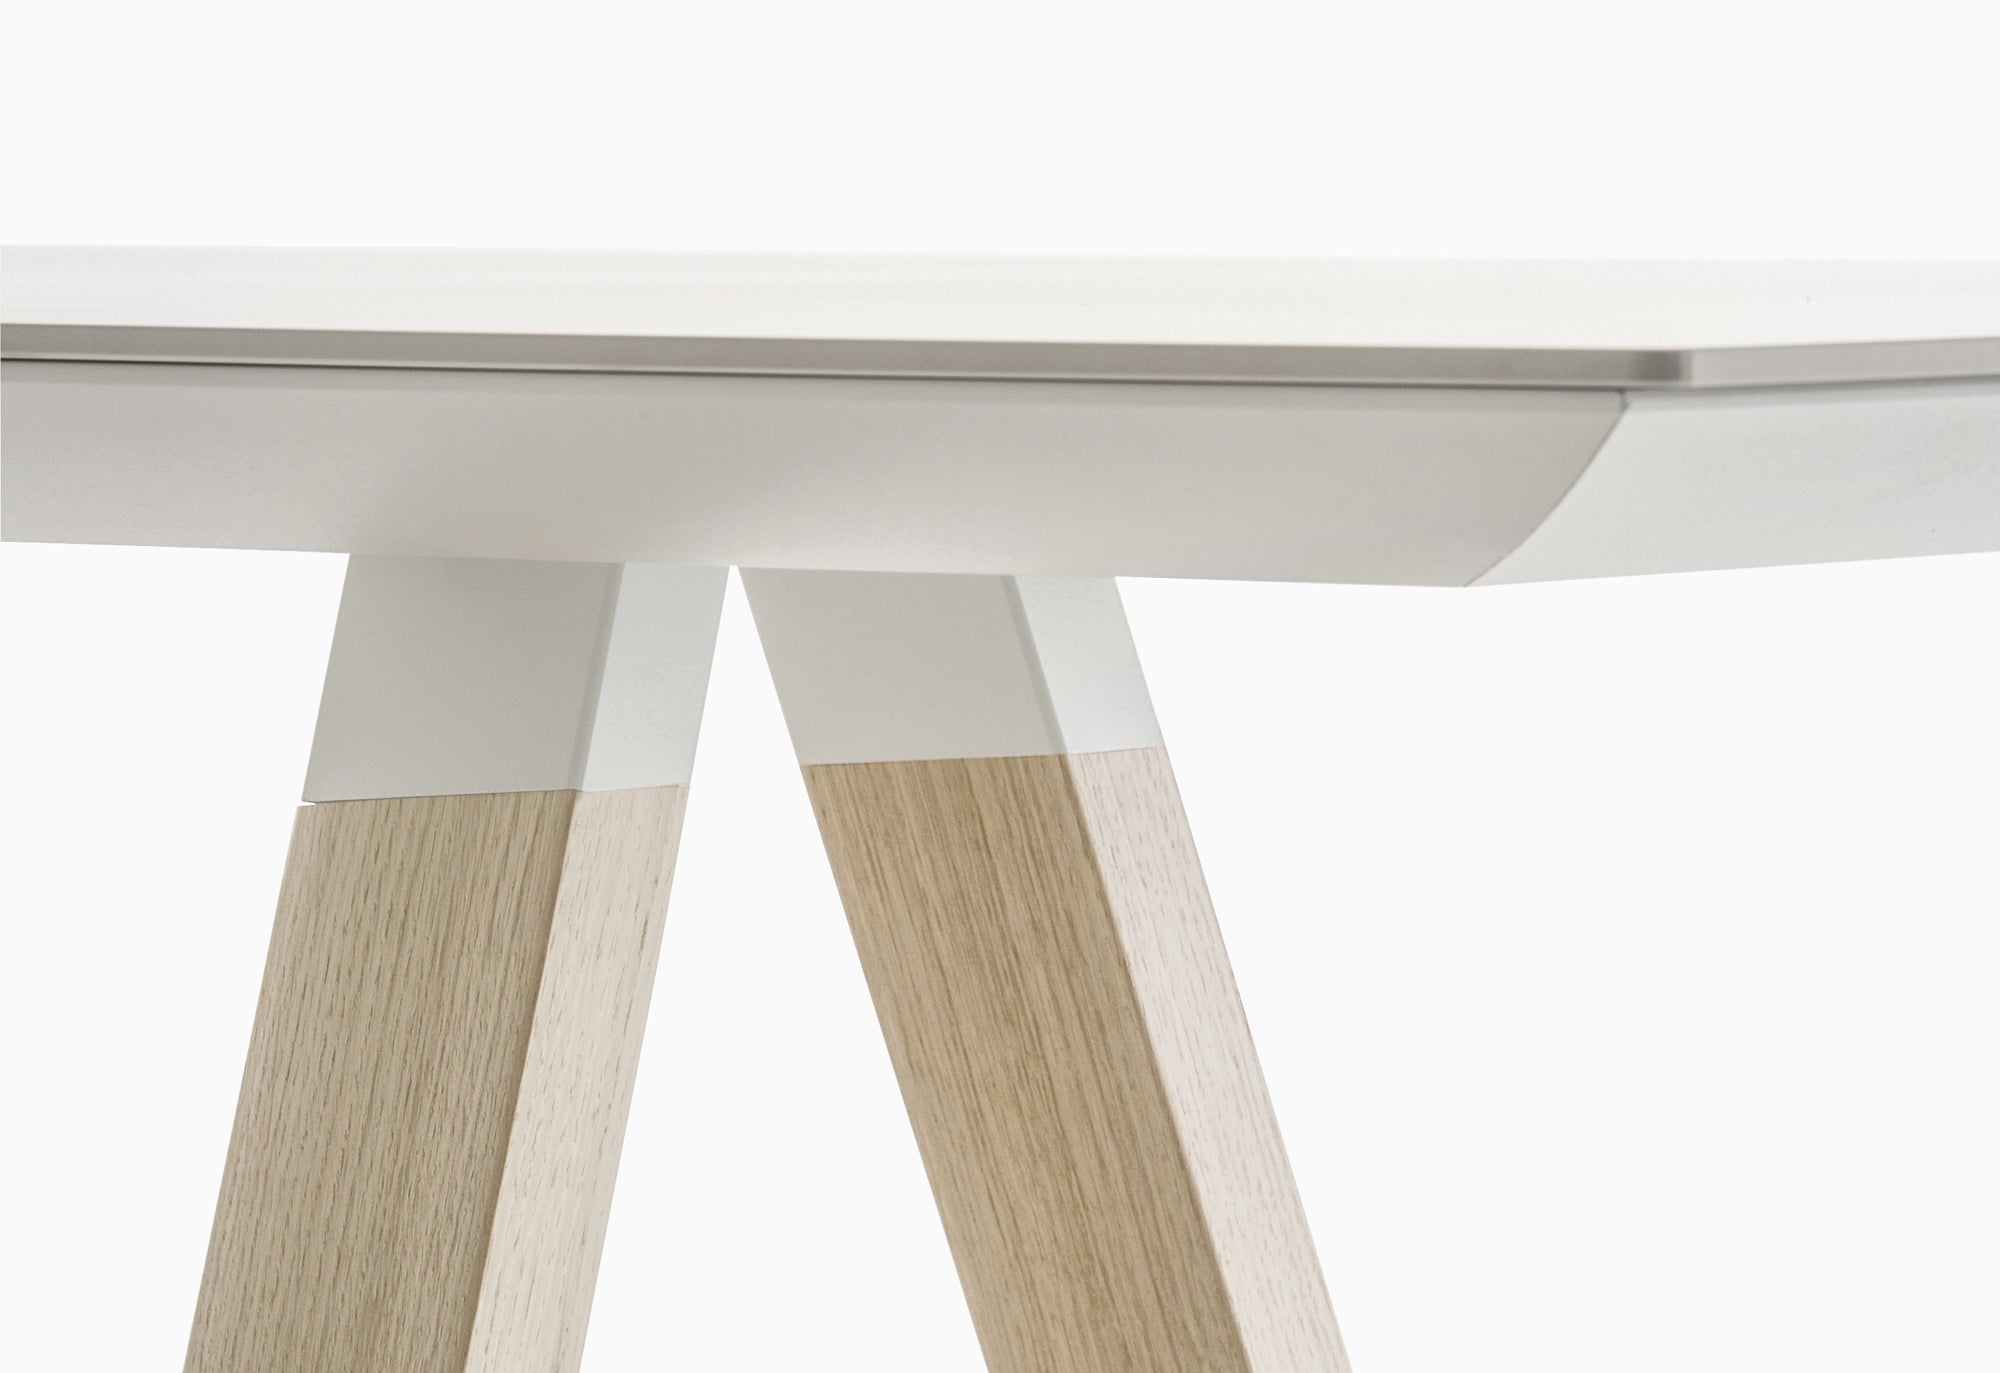 Pedrali Arki Wood ARKW107 Bench Height Table